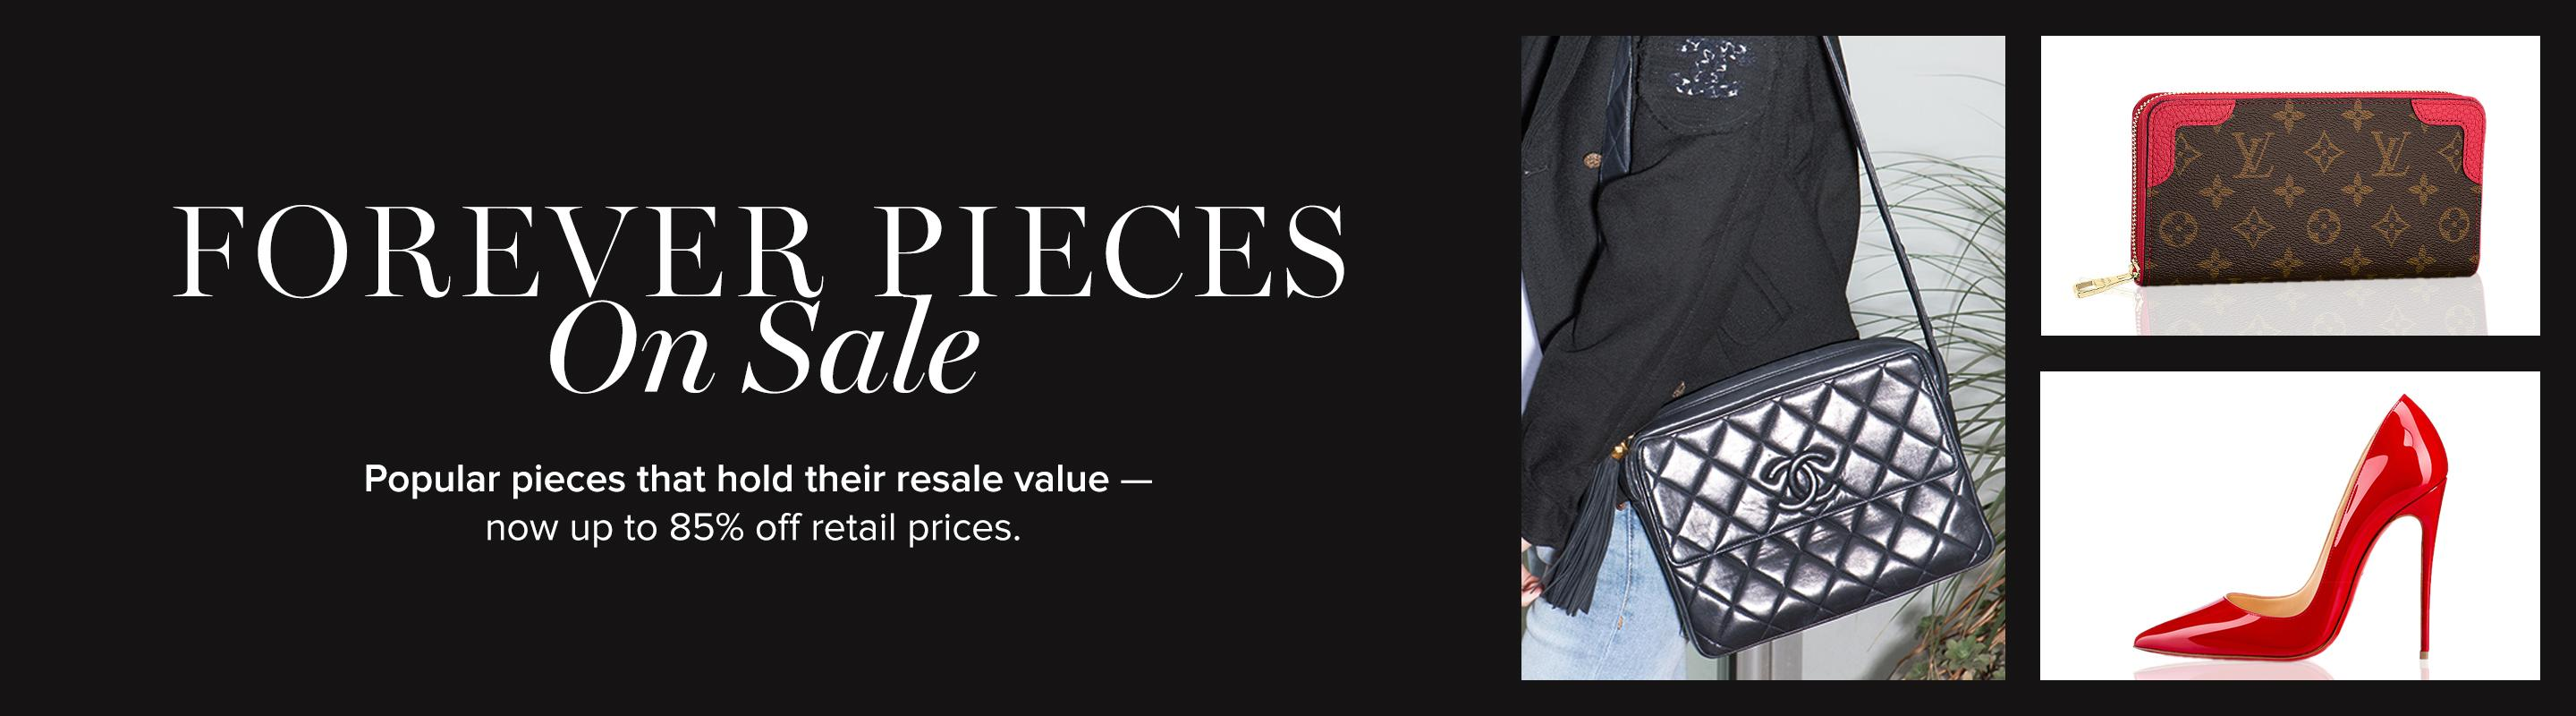 Forever Pieces On Sale